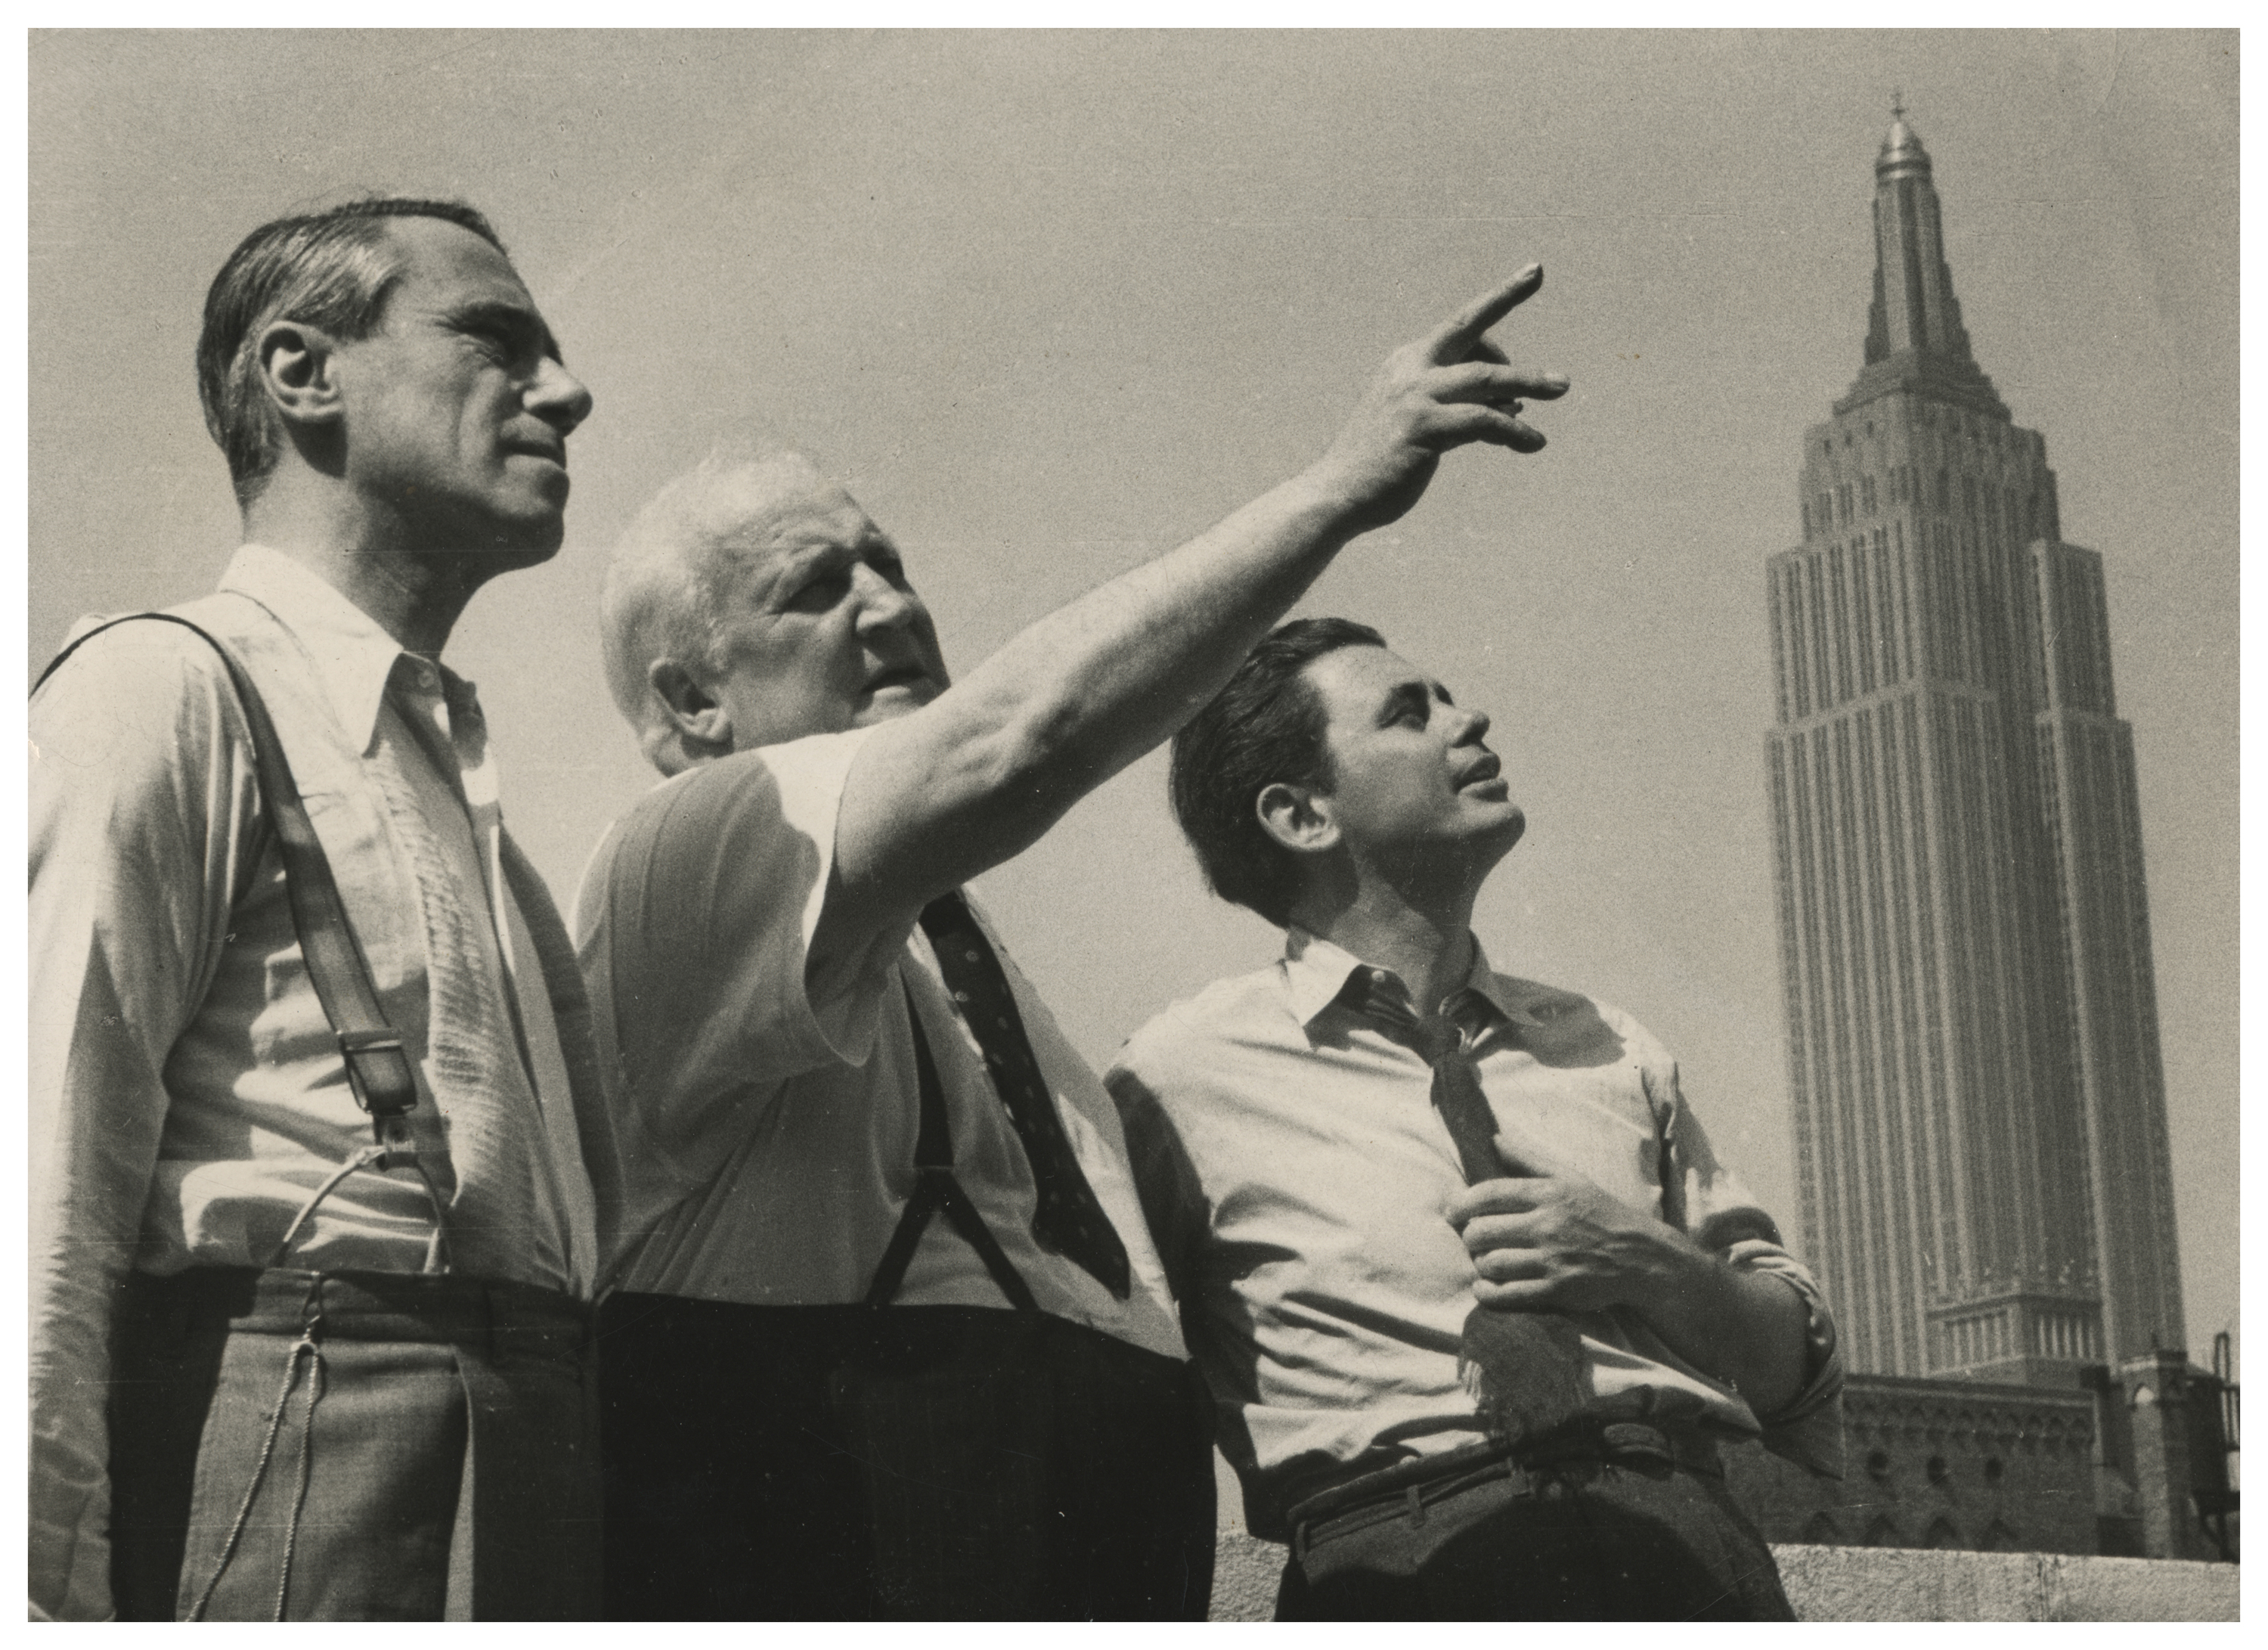 Hans Richter, Robert Flaherty, and Joris Ivens